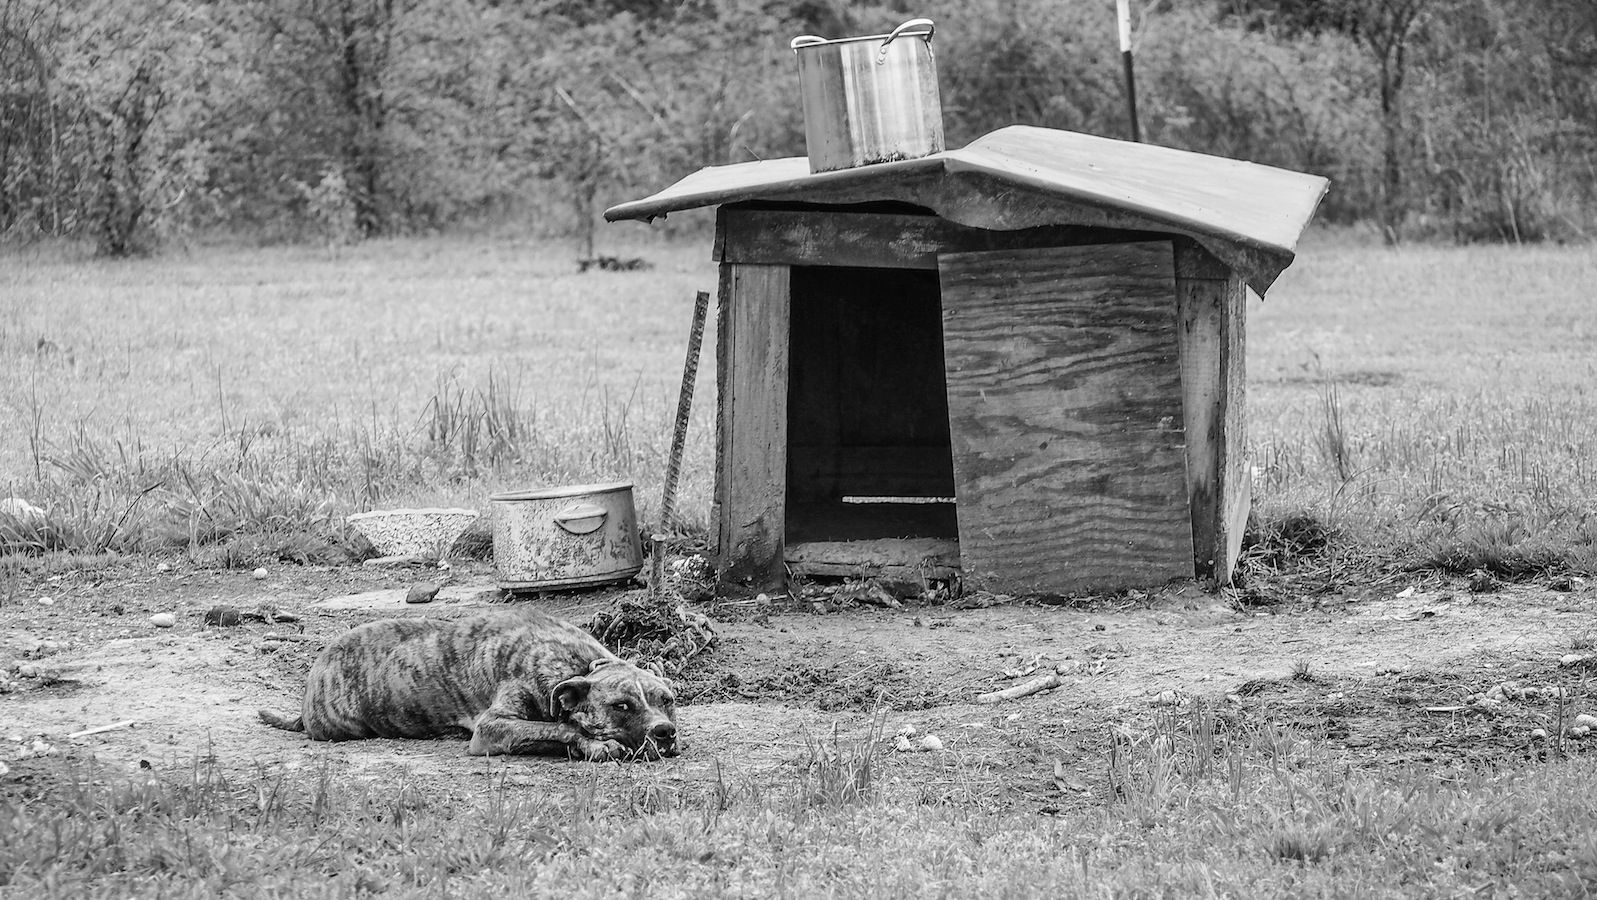 RL's nephew, Joon, had a trailer on land back in the woods just outside Como, Mississippi.  Joon's yard was a common spot for RL to set up and hold hill country blues parties.  Here's Joon's dog resting between sets during one of RL's yard parties. Joon has since moved.